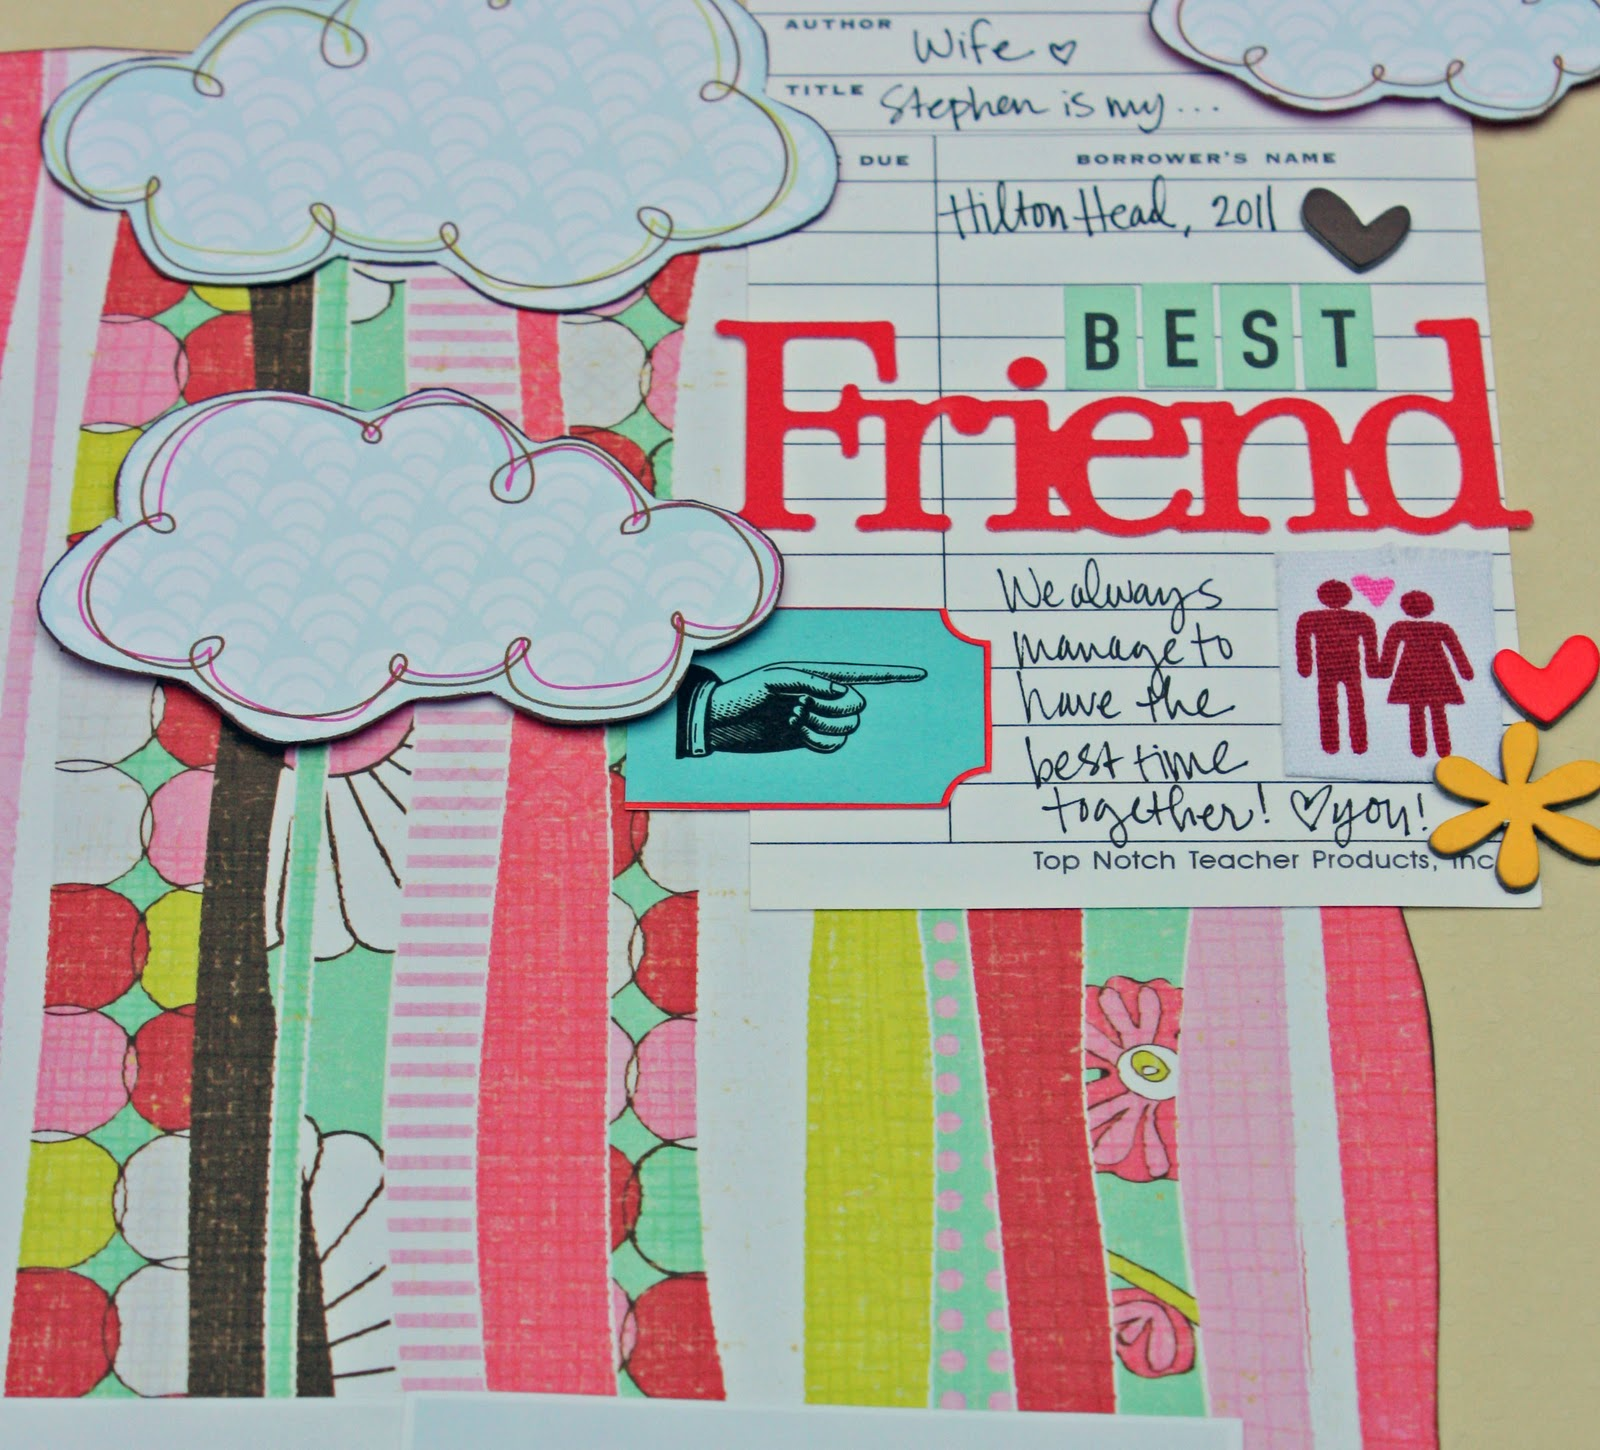 Papers about best friends